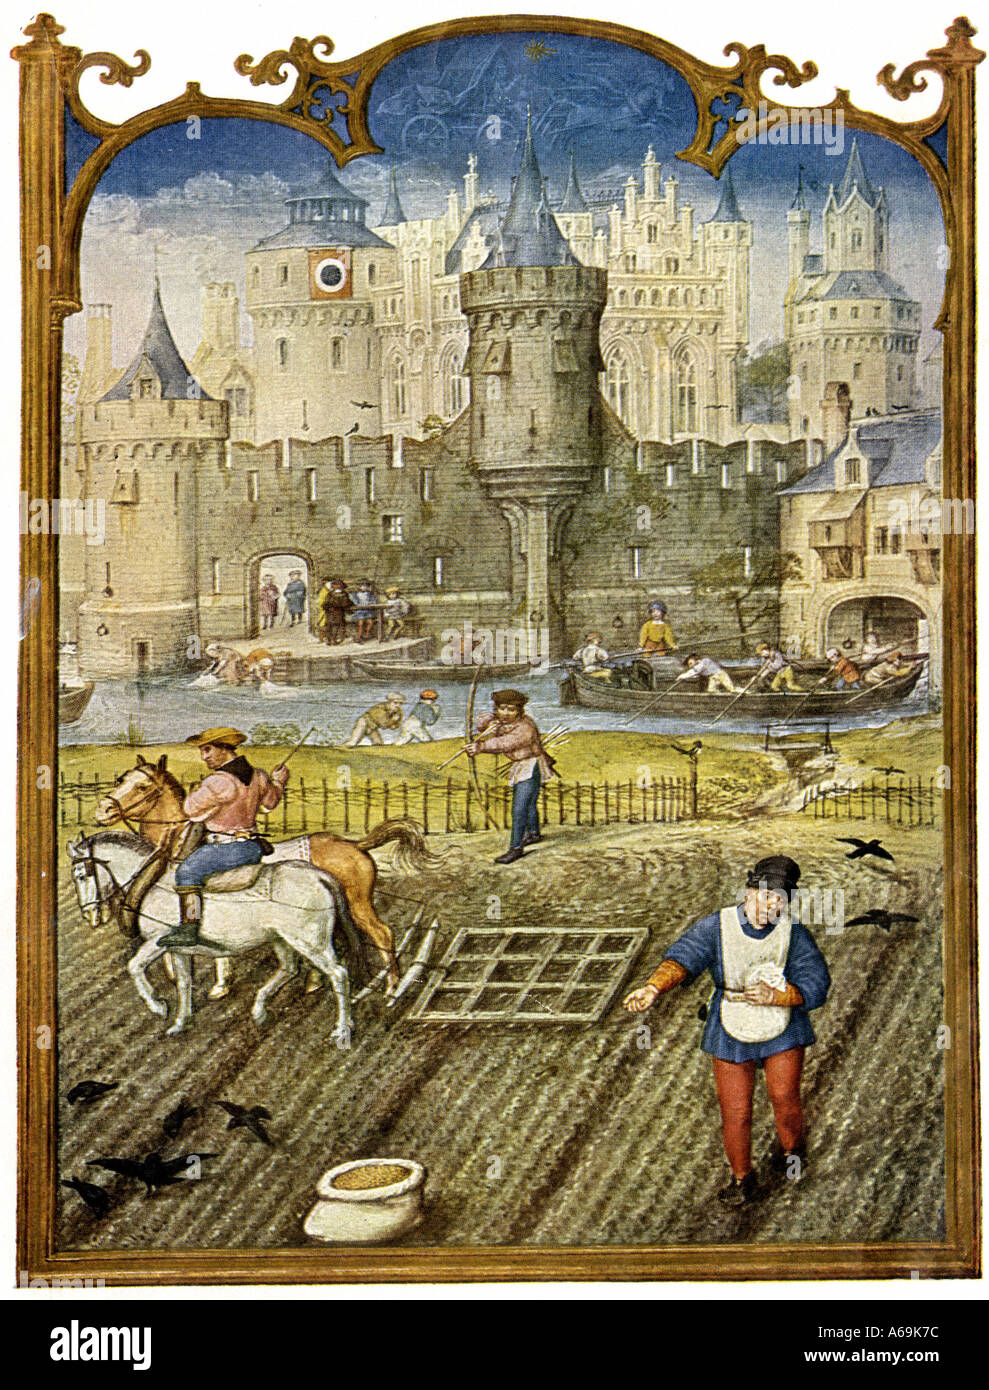 Peasants sowing and cultivating fields outside a walled town in the Middle Ages. Color halftone - Stock Image